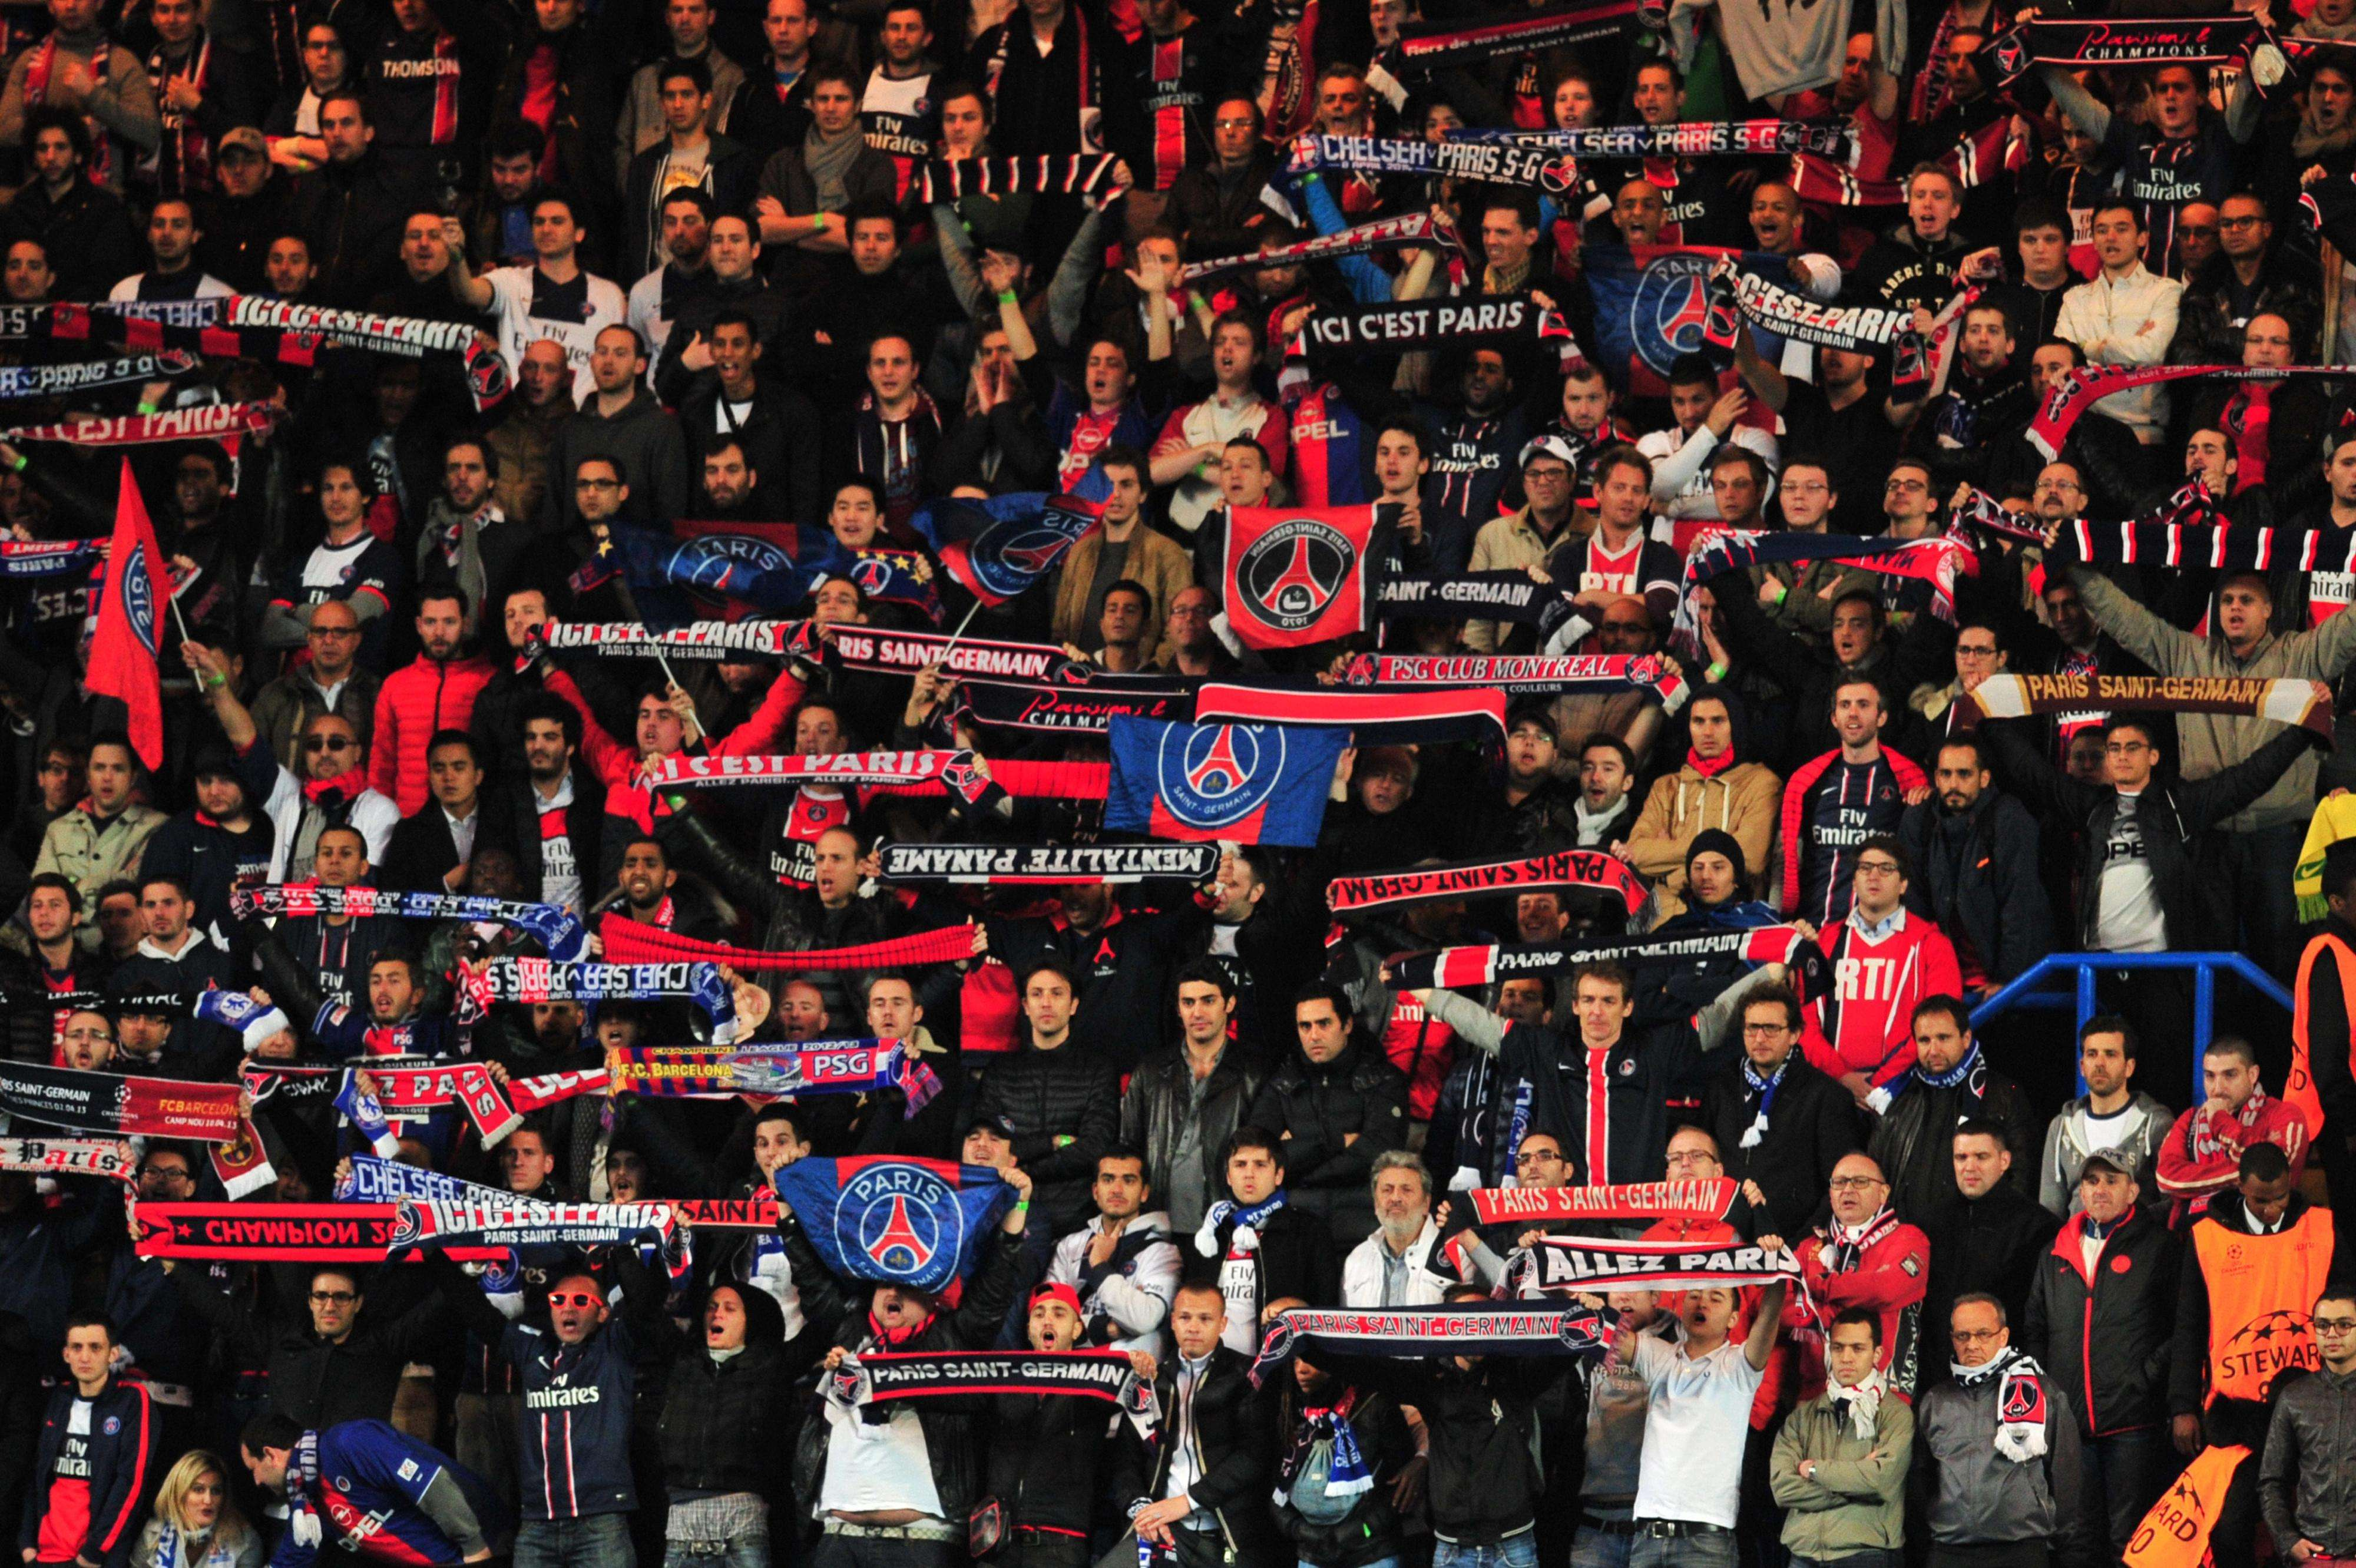 PSG punished after disabled Chelsea fans insulted